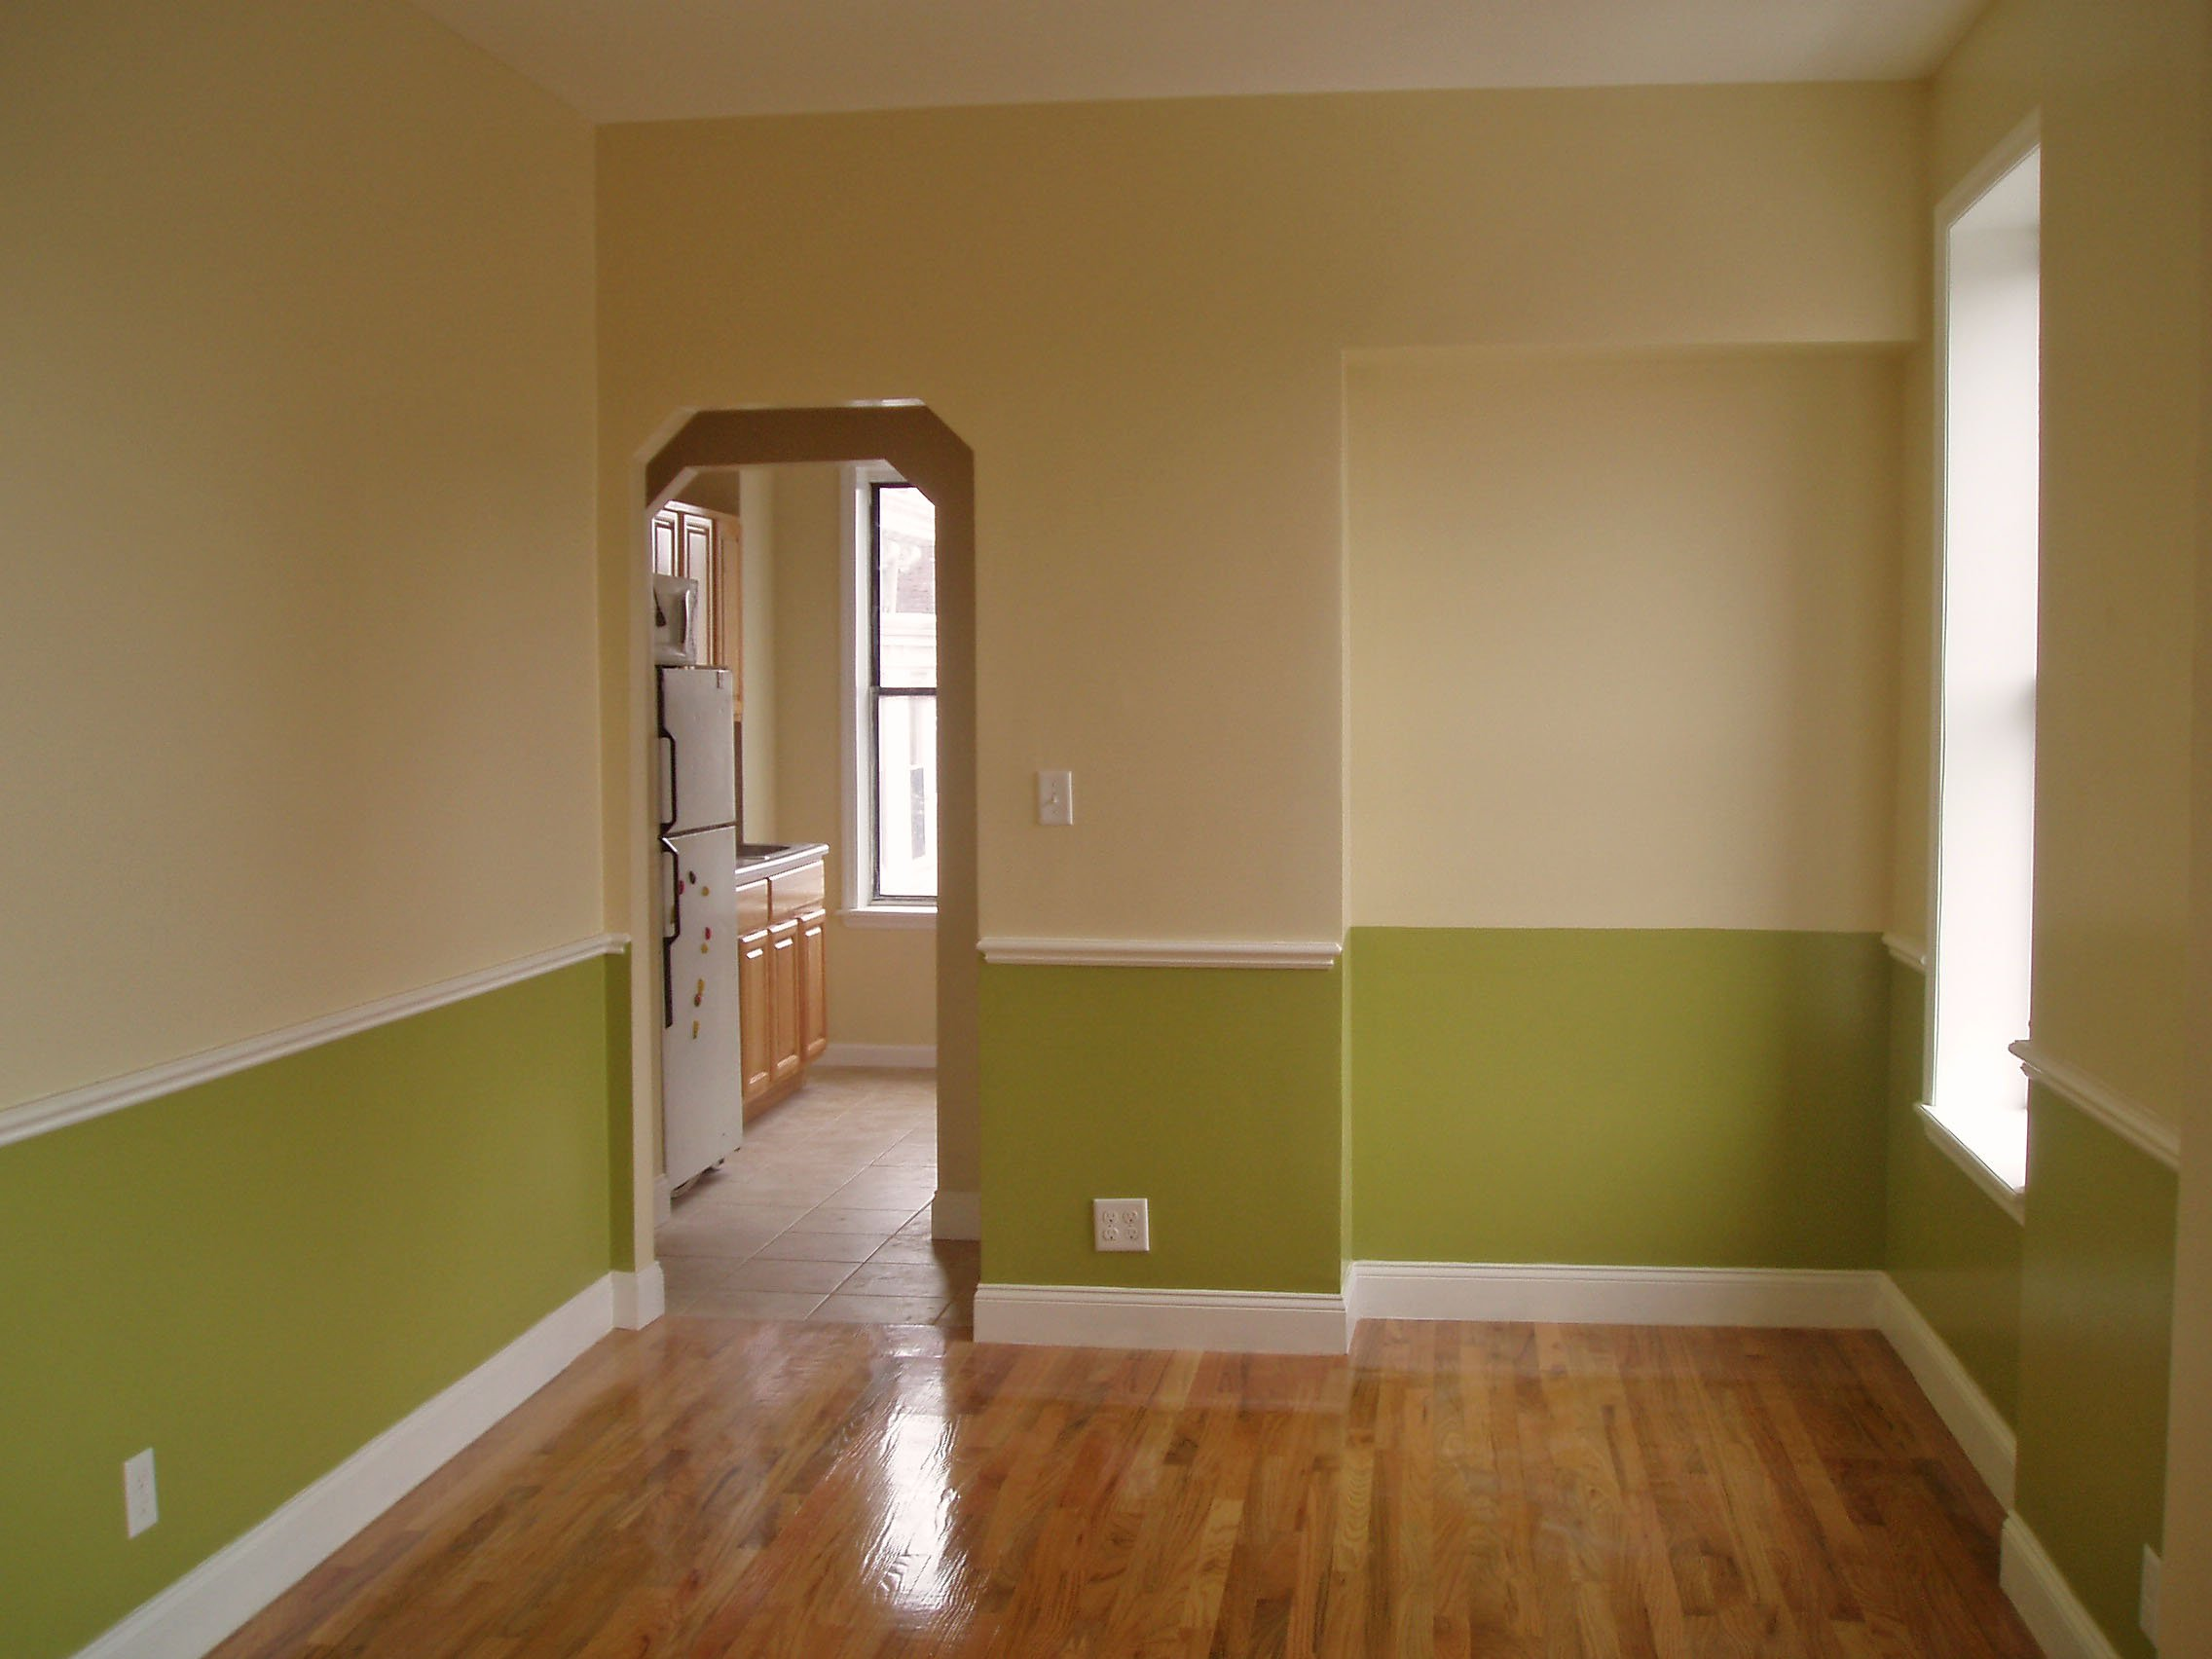 Crown heights 2 bedroom apartment for rent brooklyn crg3003 - 2 bedroom apartments for rent in bronx ...